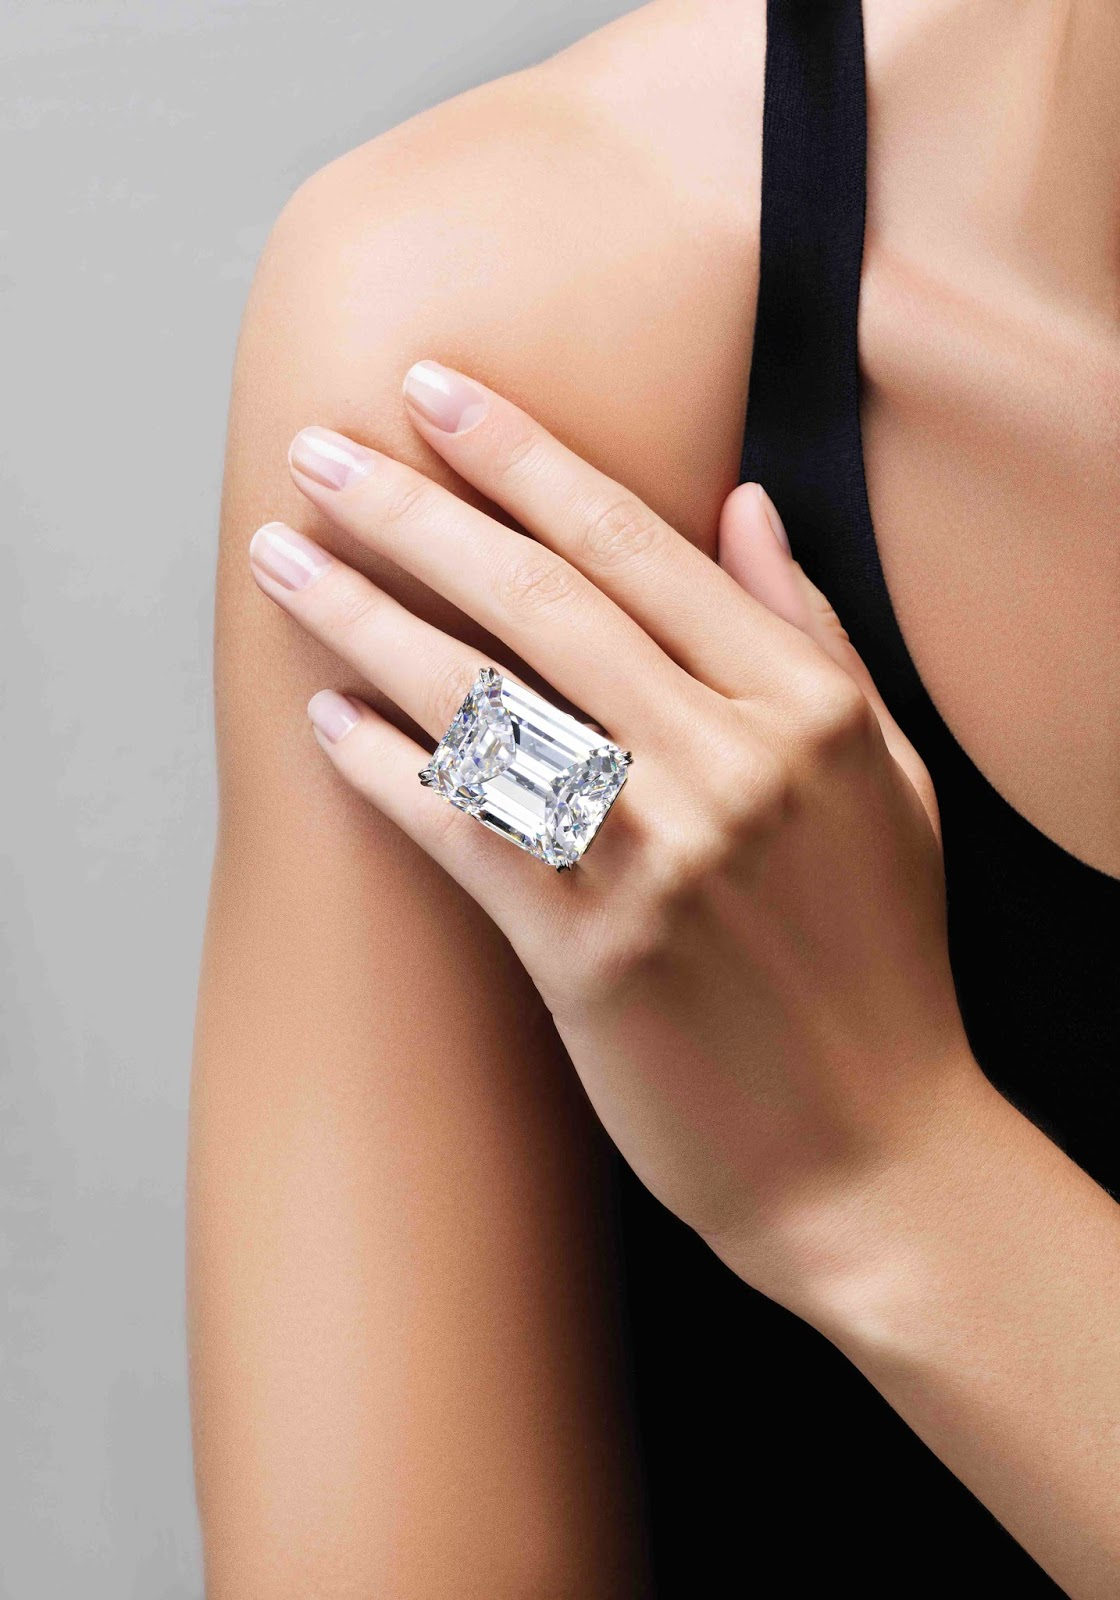 Jewelry News Network 100 Carat Diamond Sells For $22 Million At Sotheby's